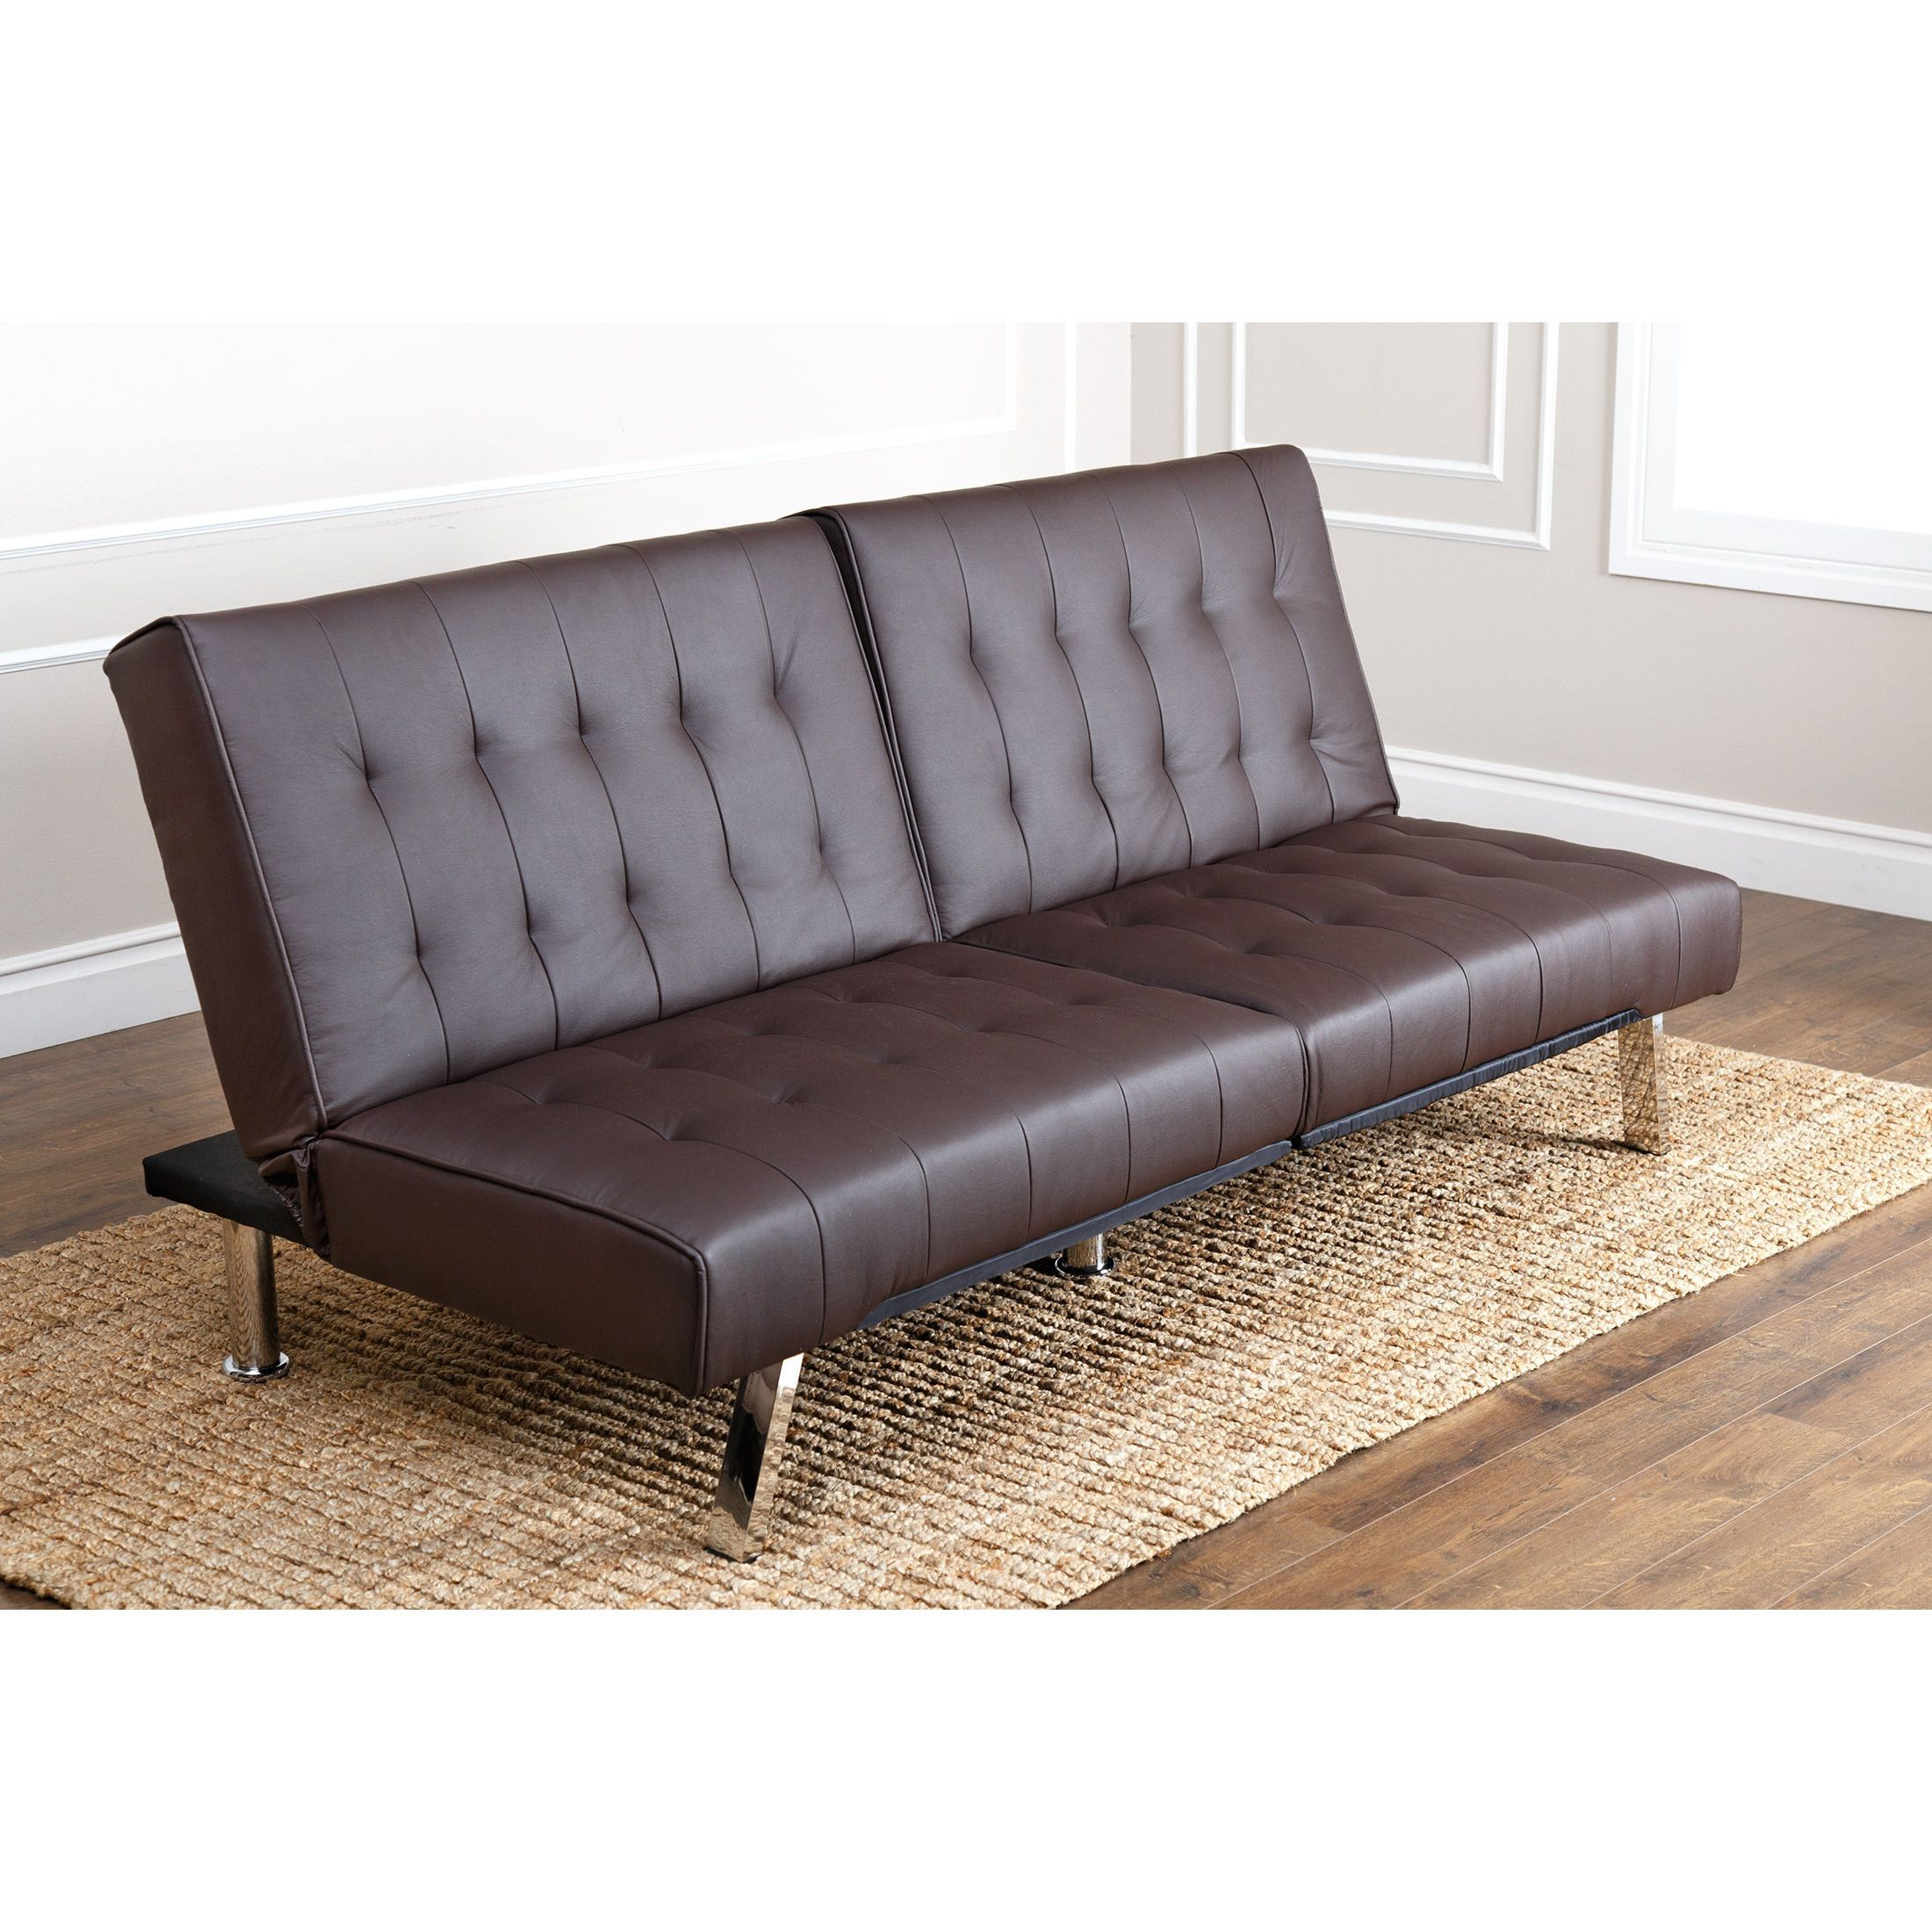 Brilliant Abbyson Living Jackson Dark Leather Foldable Futon Sofa Bed Creativecarmelina Interior Chair Design Creativecarmelinacom